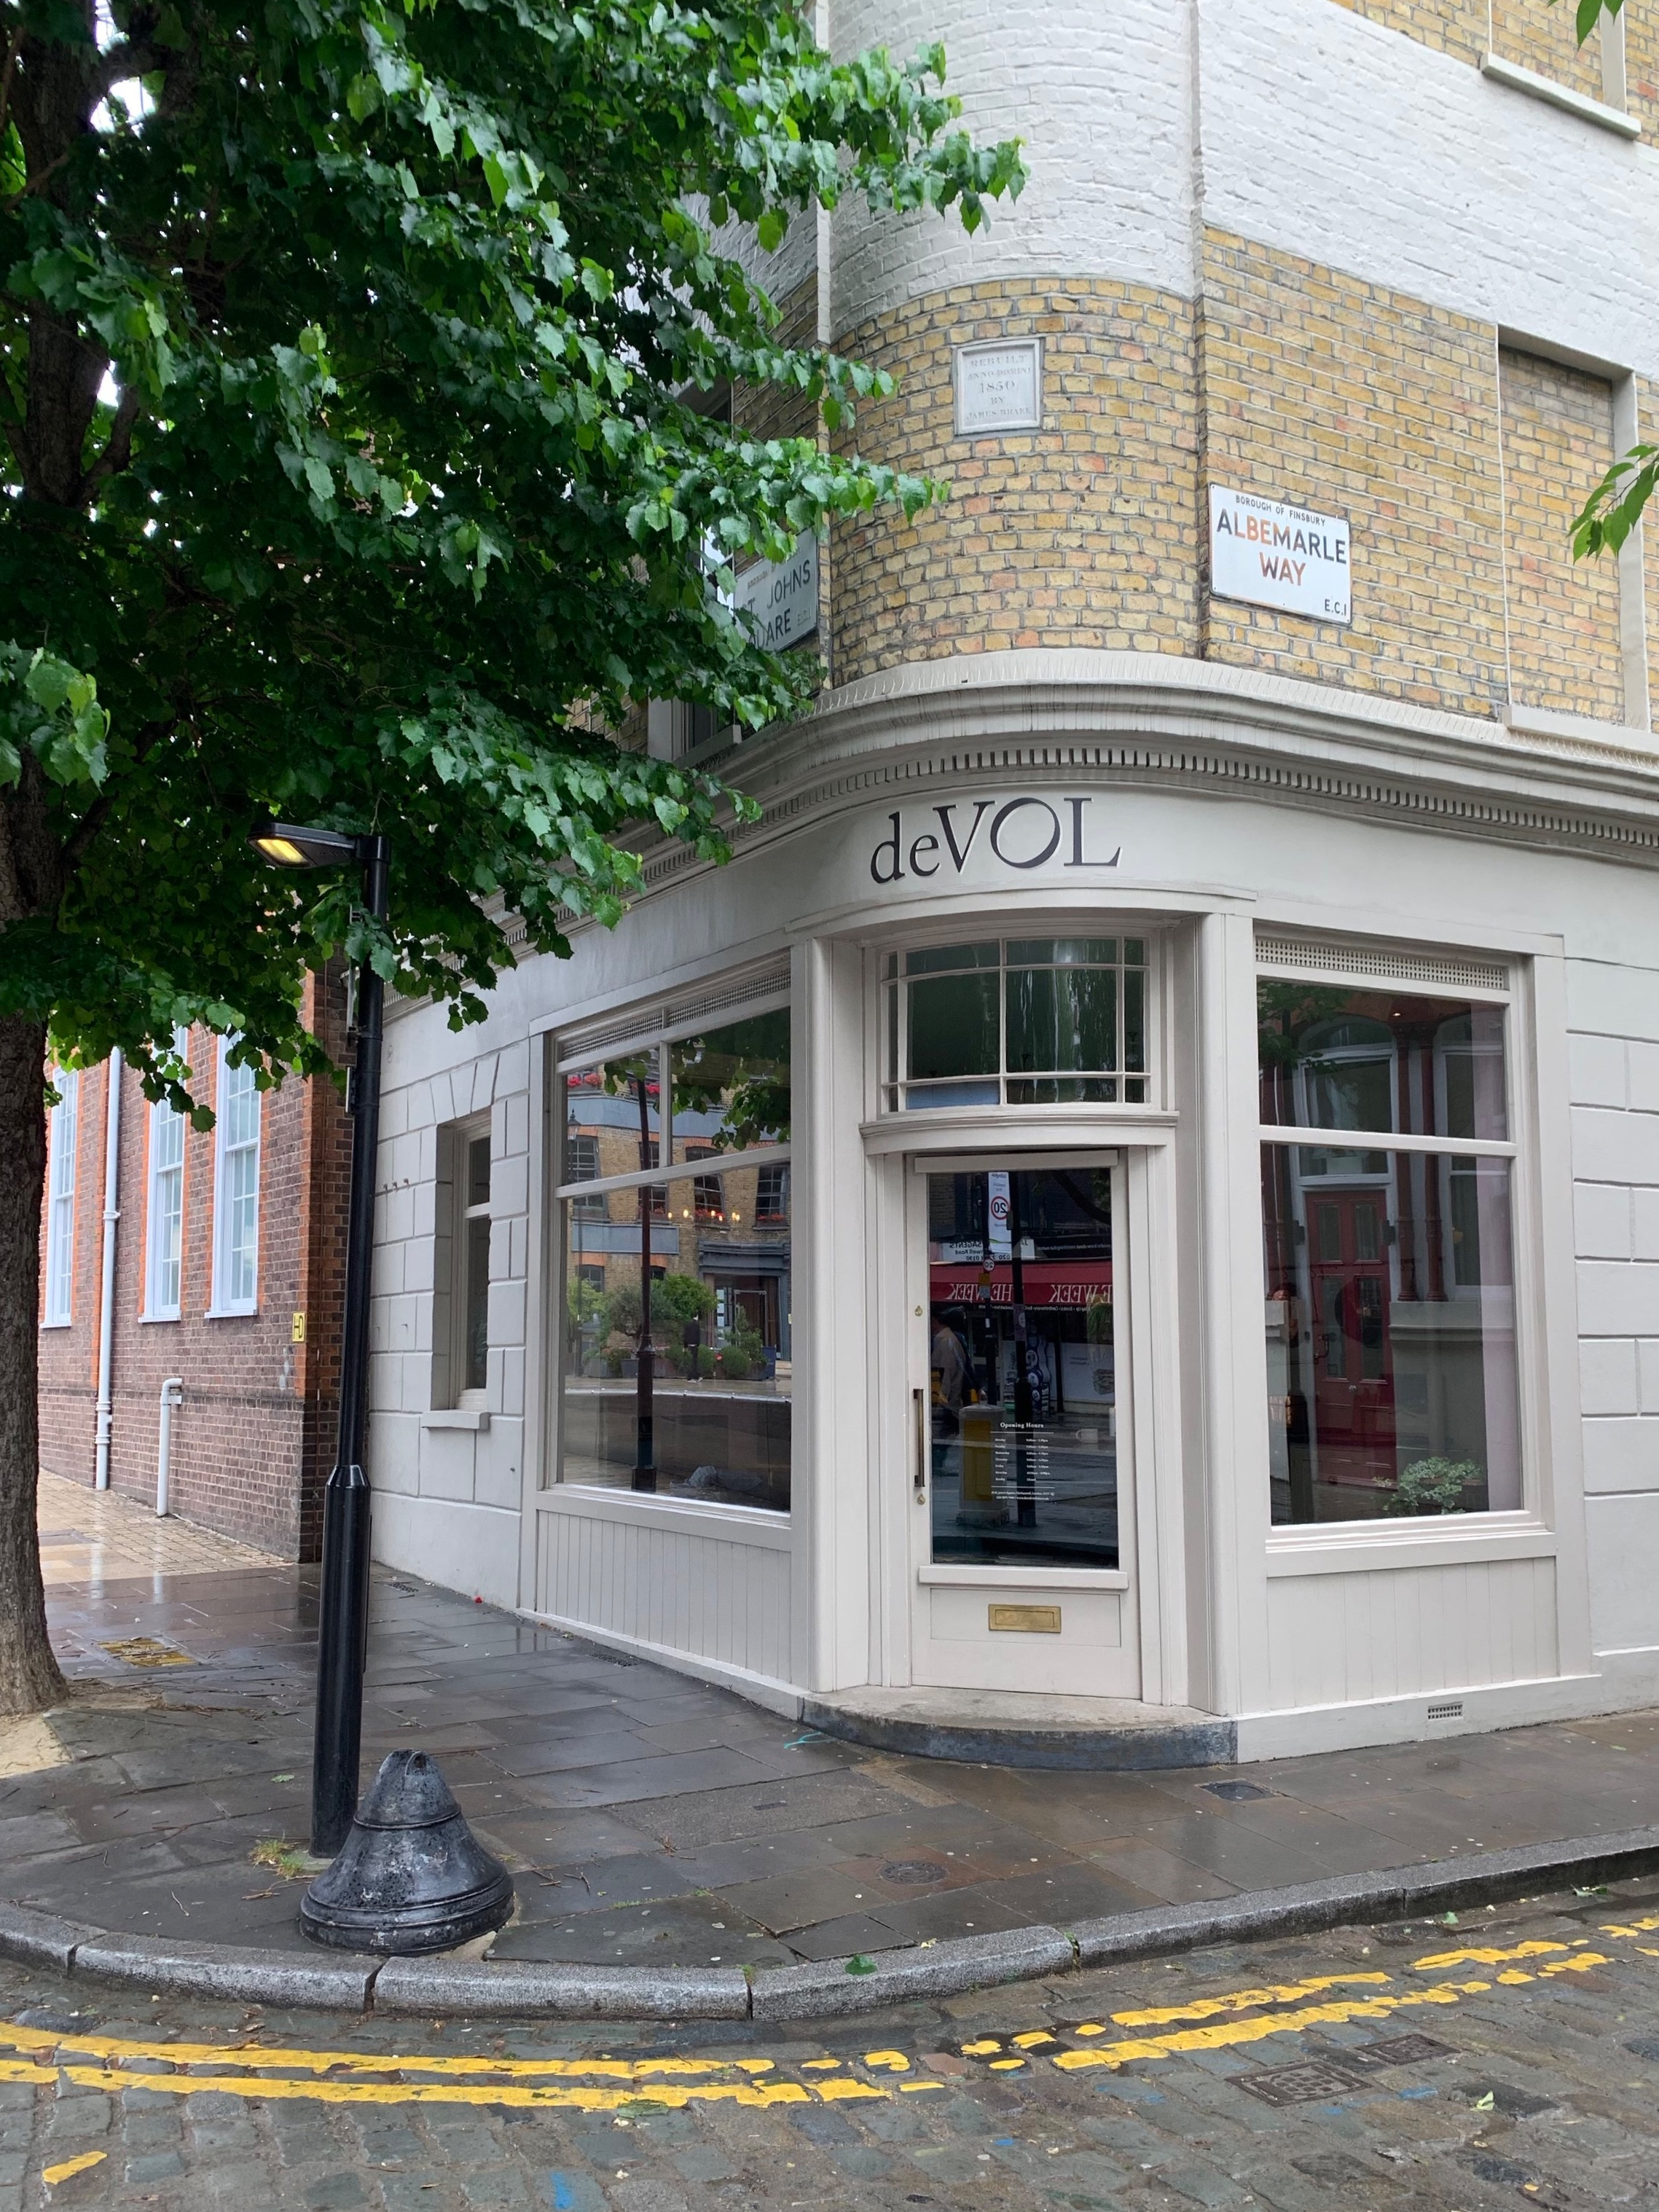 I've been following this British kitchen design company for awhile now, so of course we had to make a pilgrimage.  This particular store was located in the Clerkenwell neighborhood in London.  Just lovely.  I'm really becoming a interior design nerd. ; )